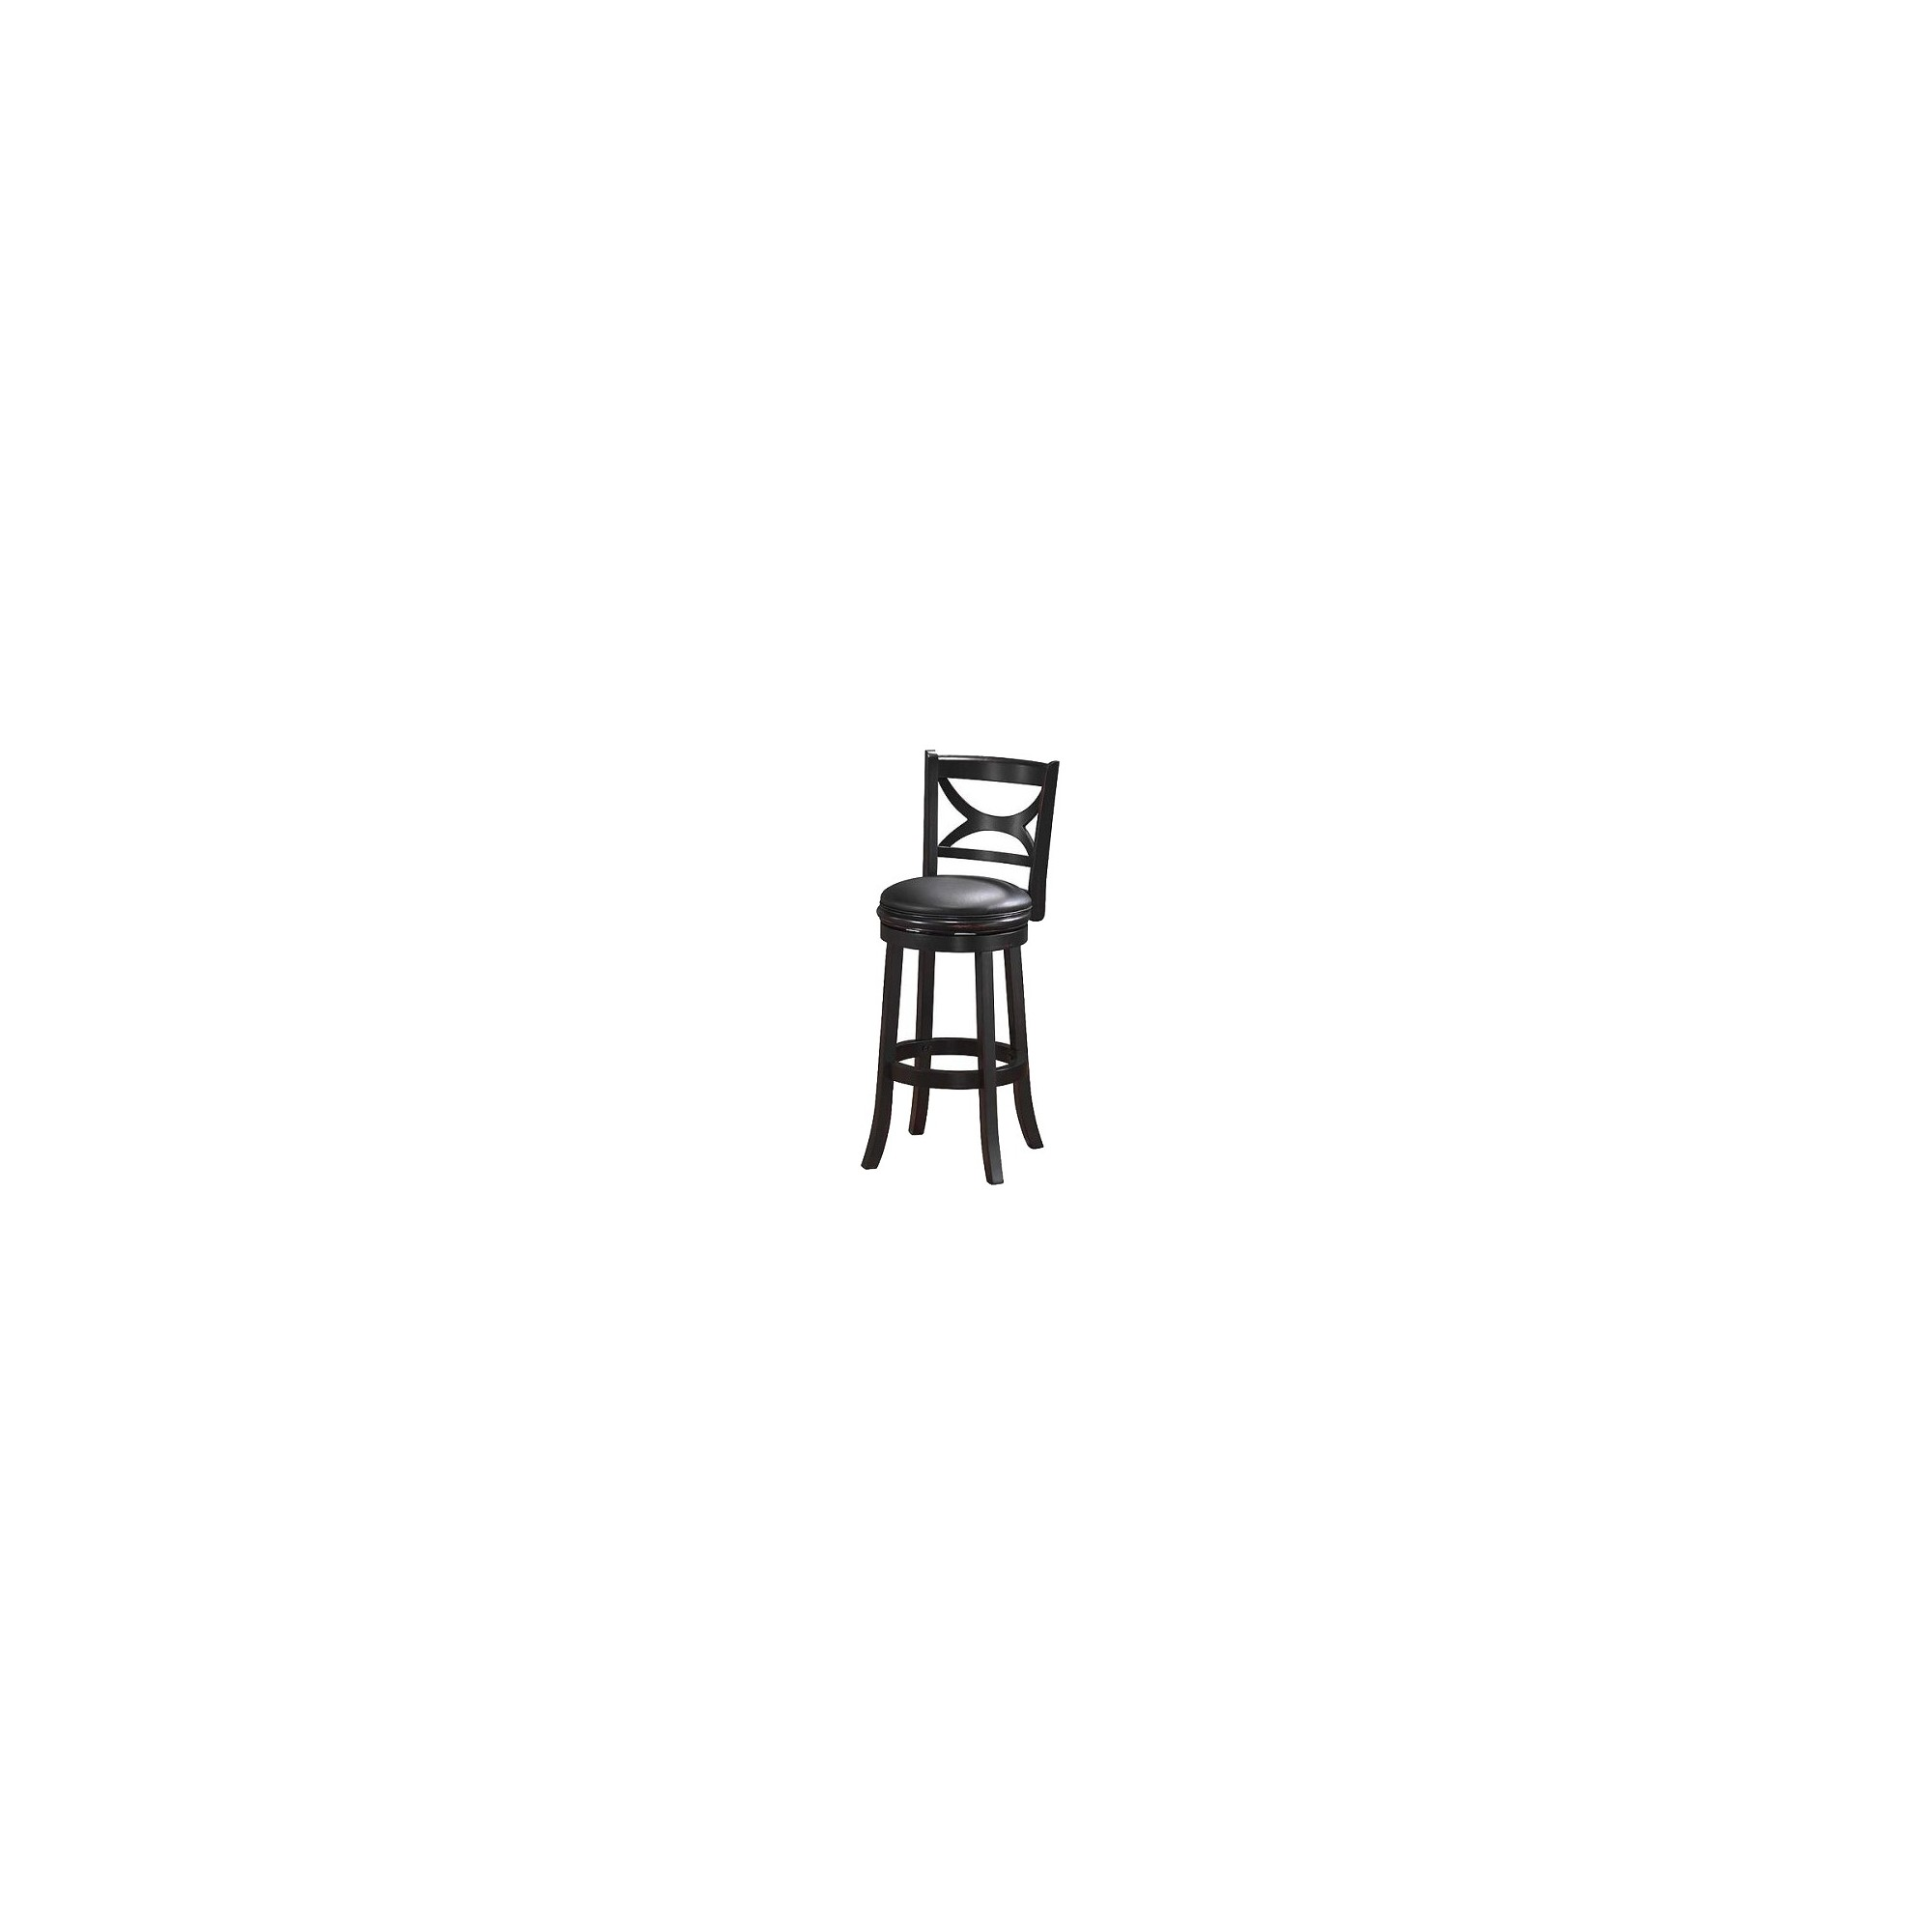 'Boraam Industries Florence Sand Through Swivel 24'' Counter Stool - Black, Size: 24'' Counterstool'